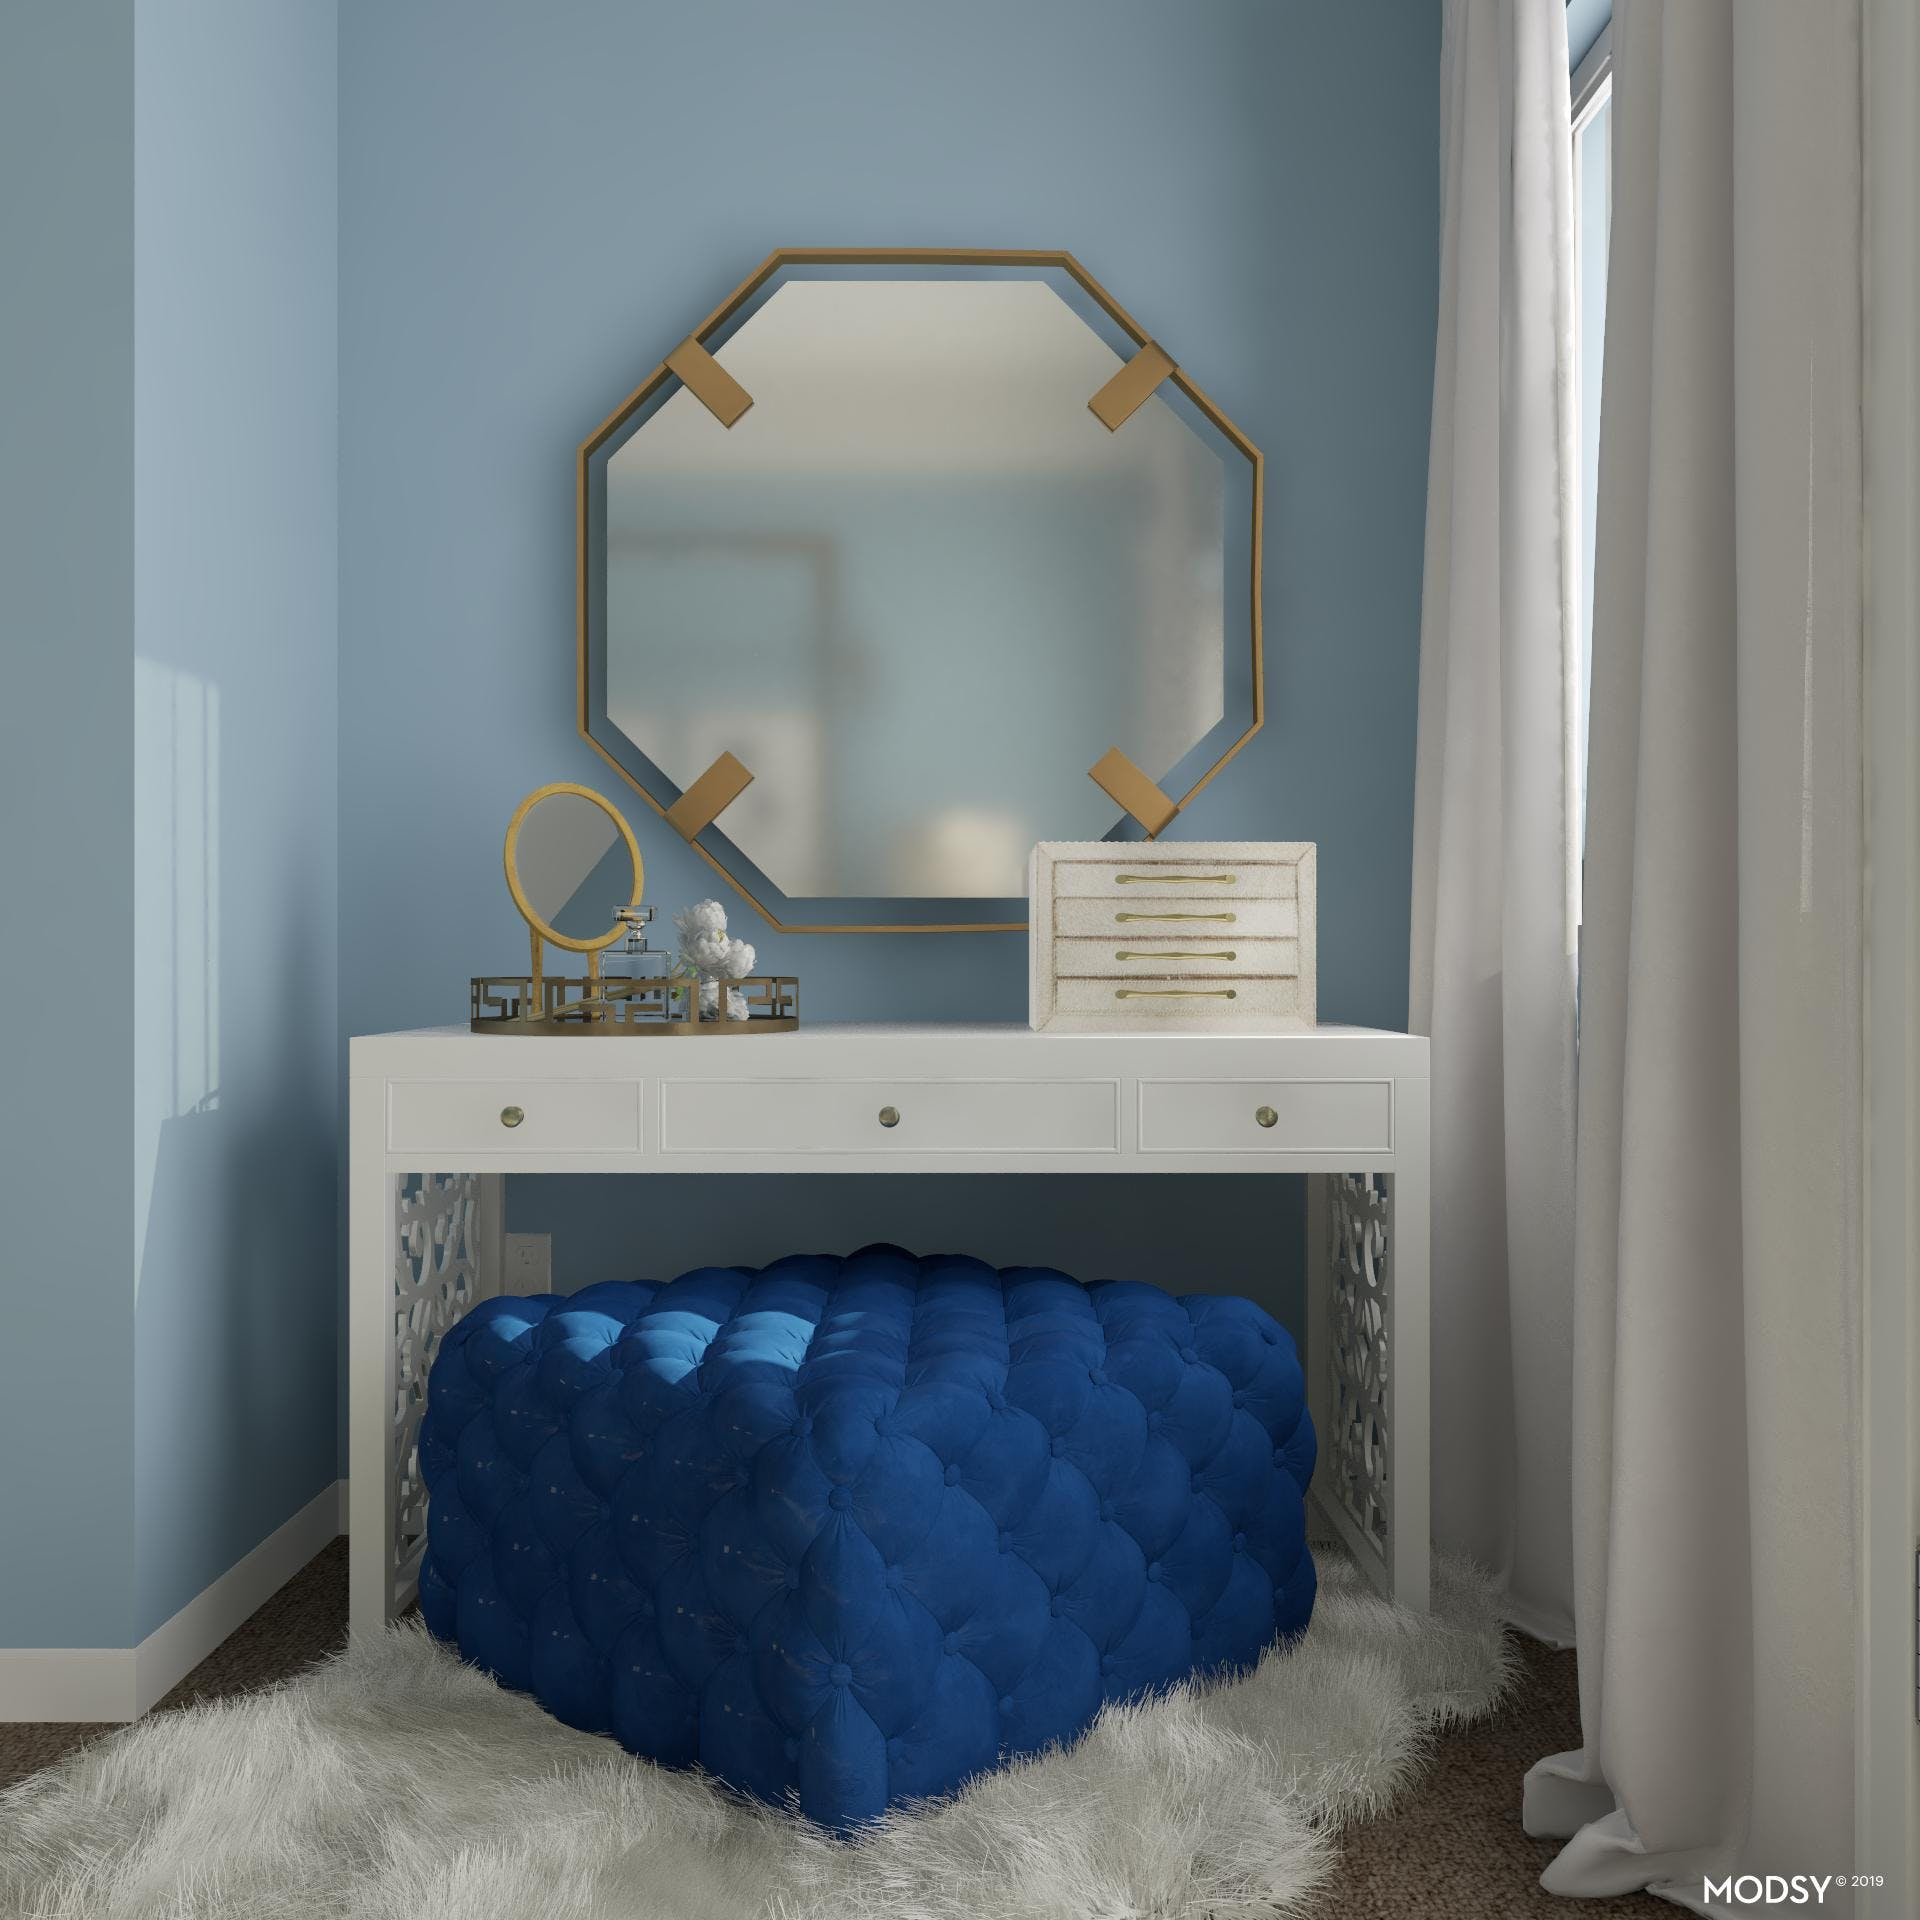 Be Vain with This Vanity